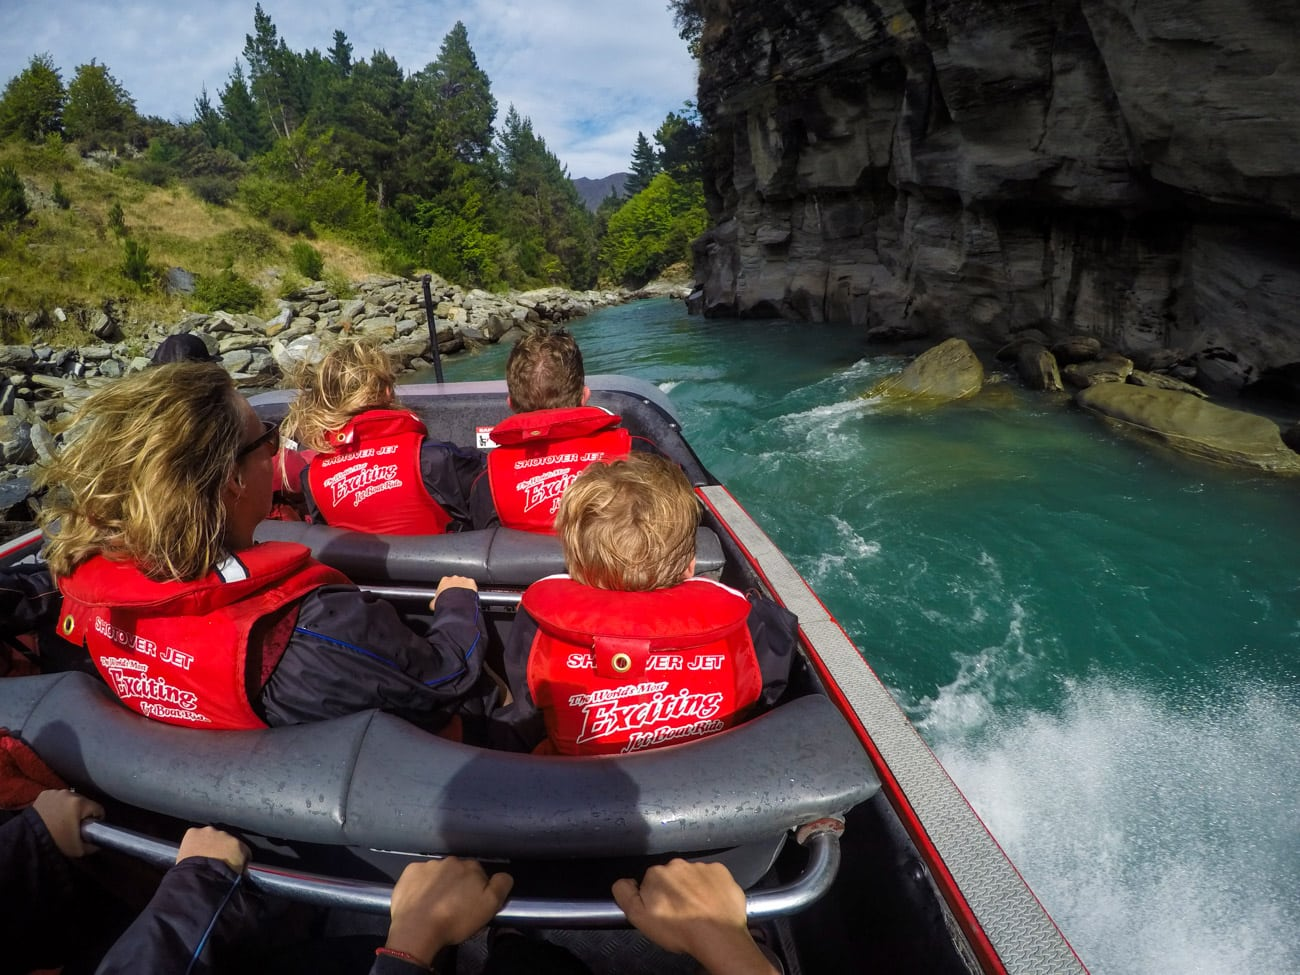 Things to do in Queenstown: Shotover Canyon Jet boat ride